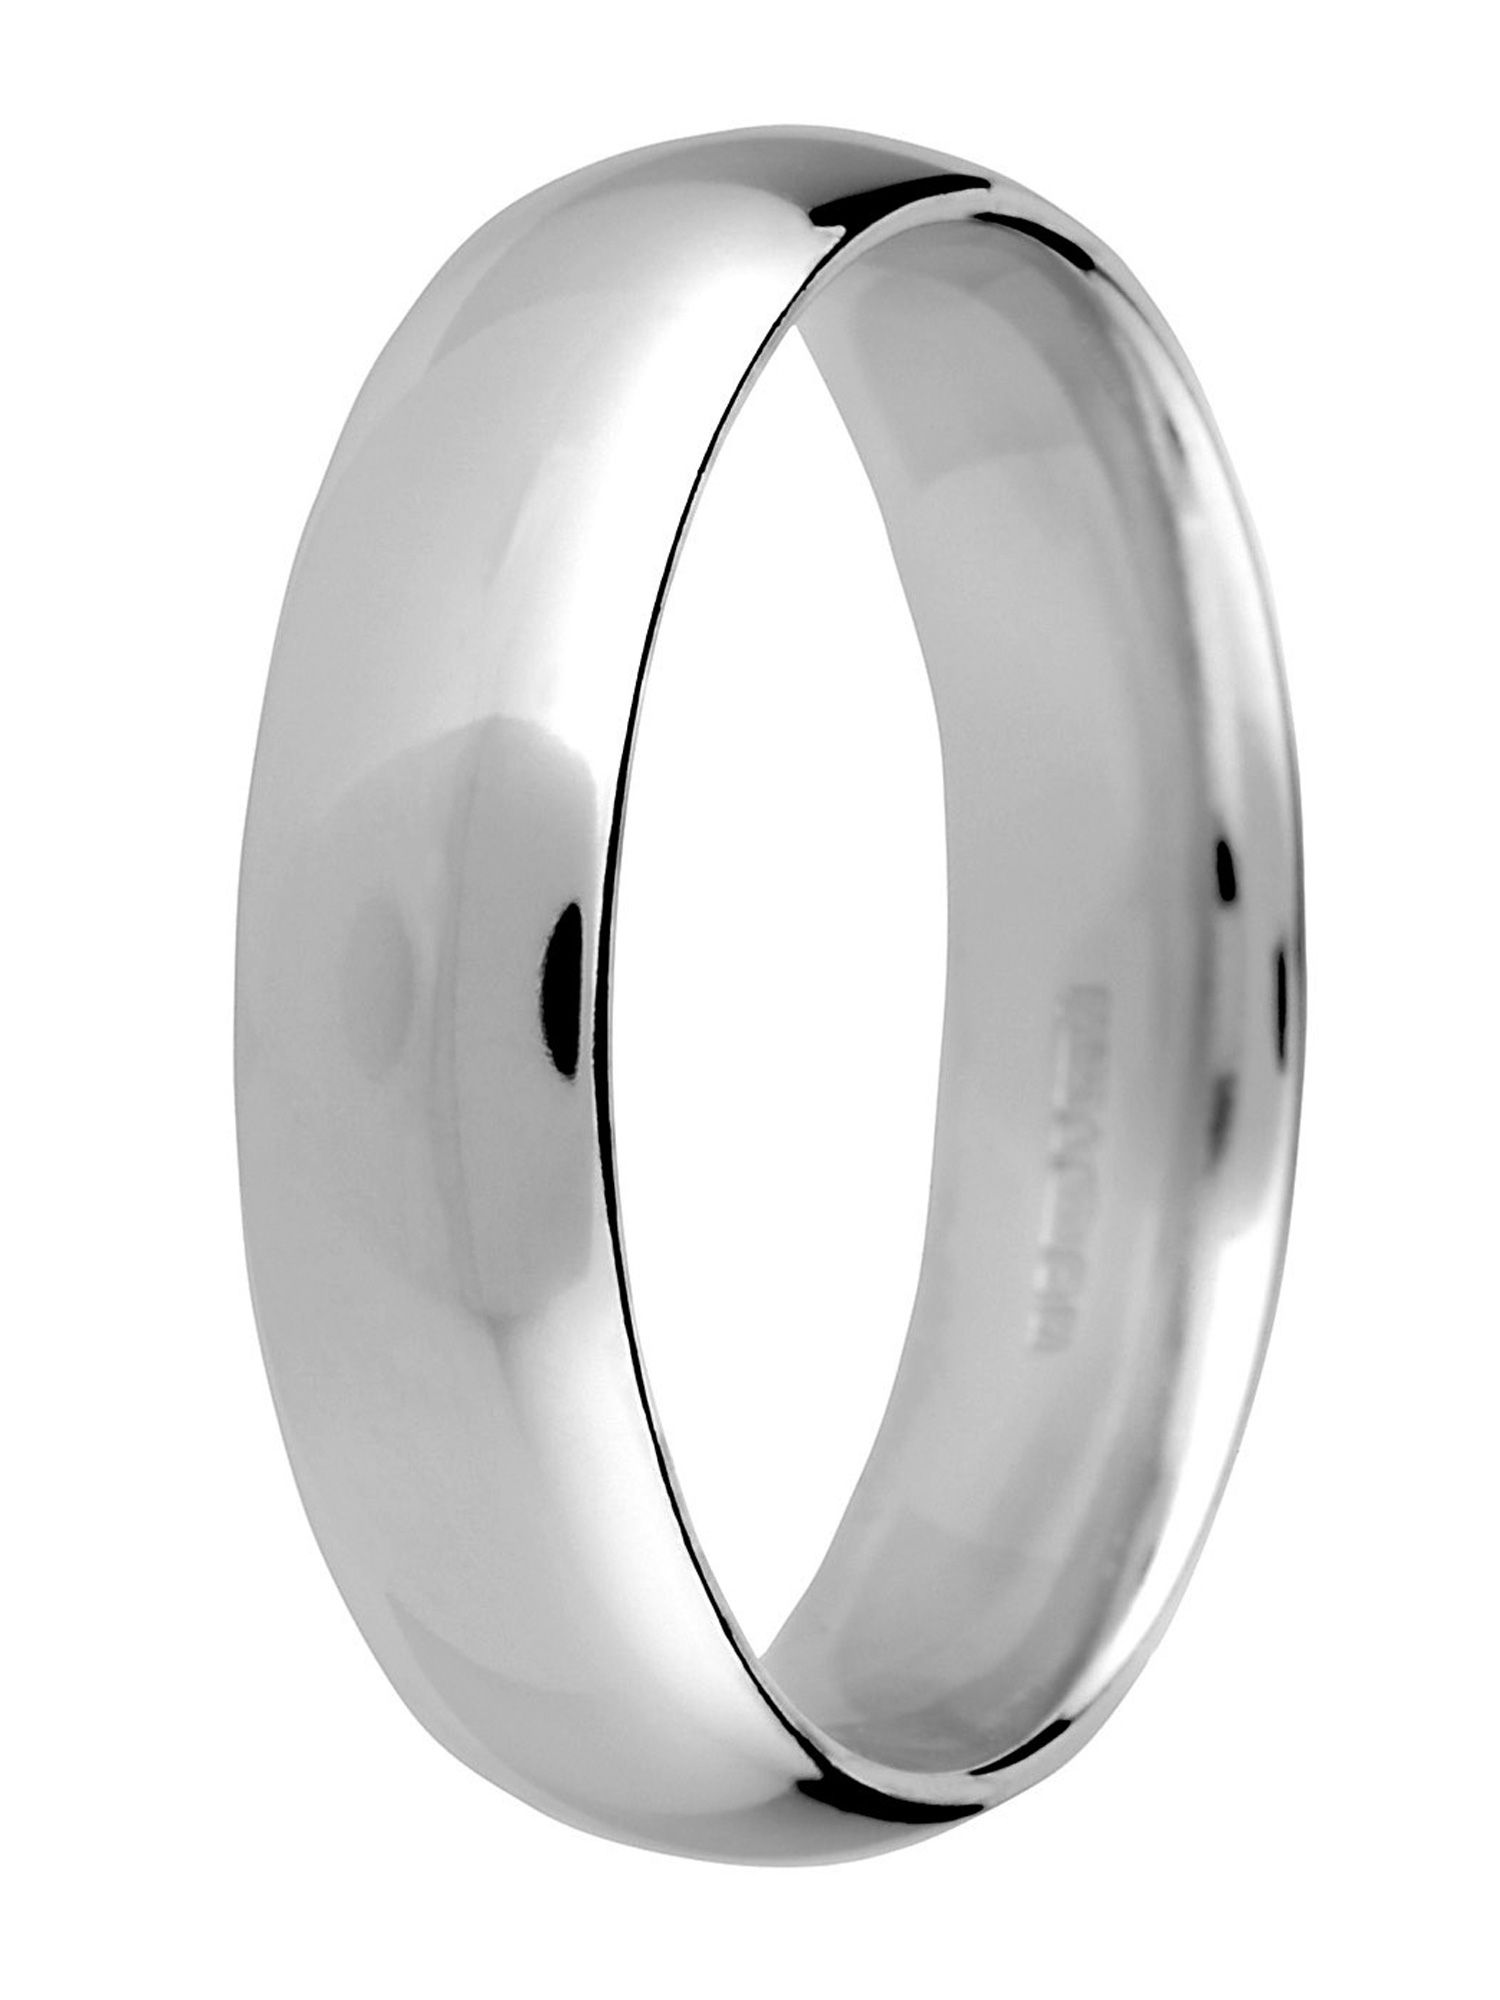 Brides platinum 5mm court wedding ring - Silver